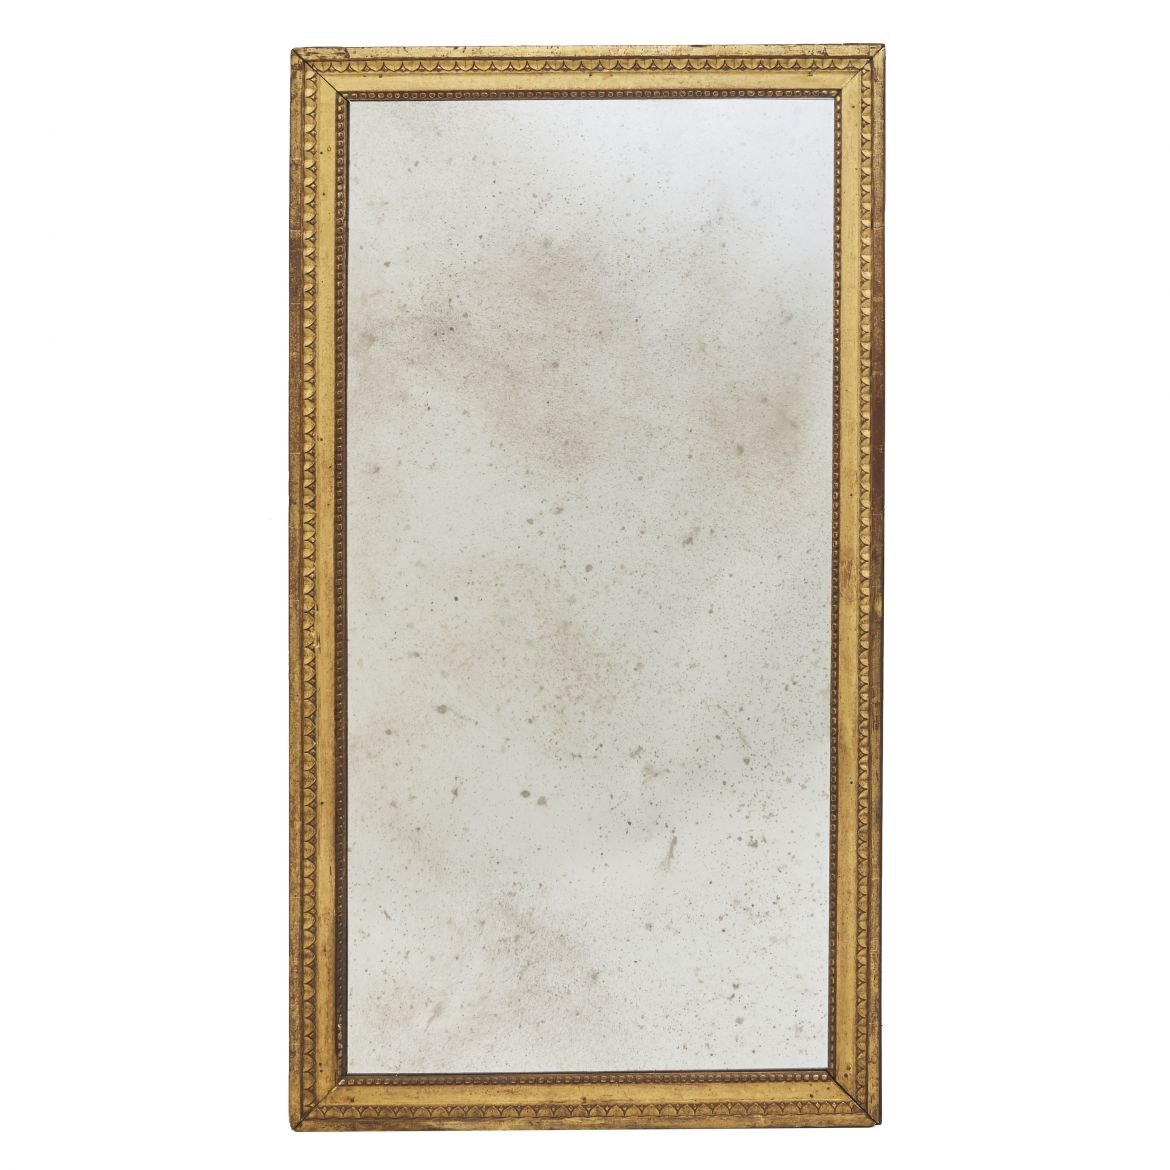 Rectangular Giltwood Mirror